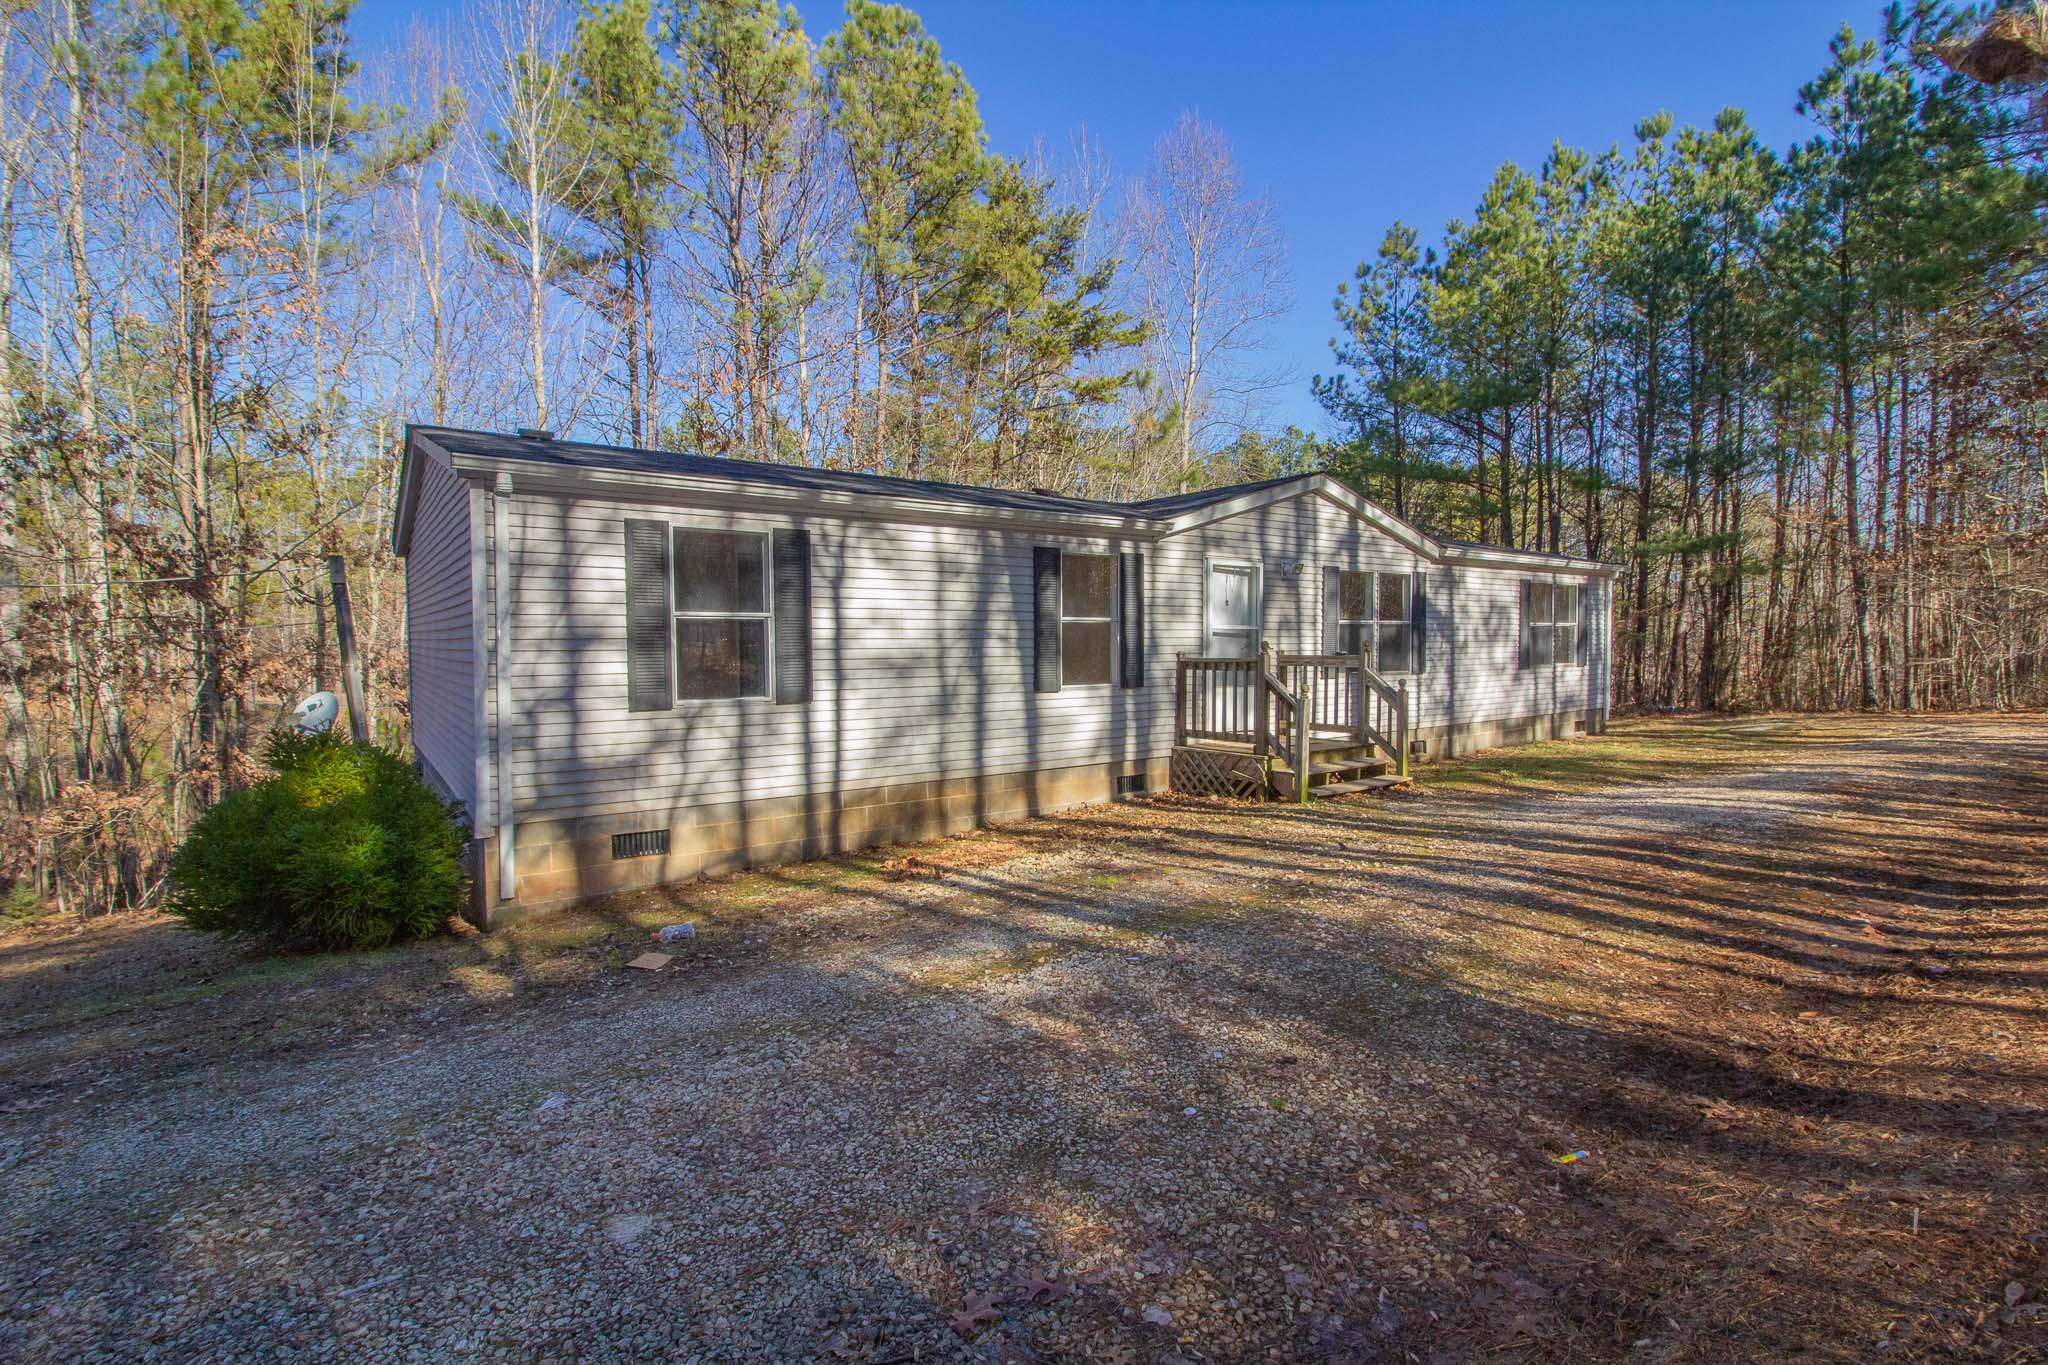 Home for Sale in Appomattox – 6624 Red House Rd